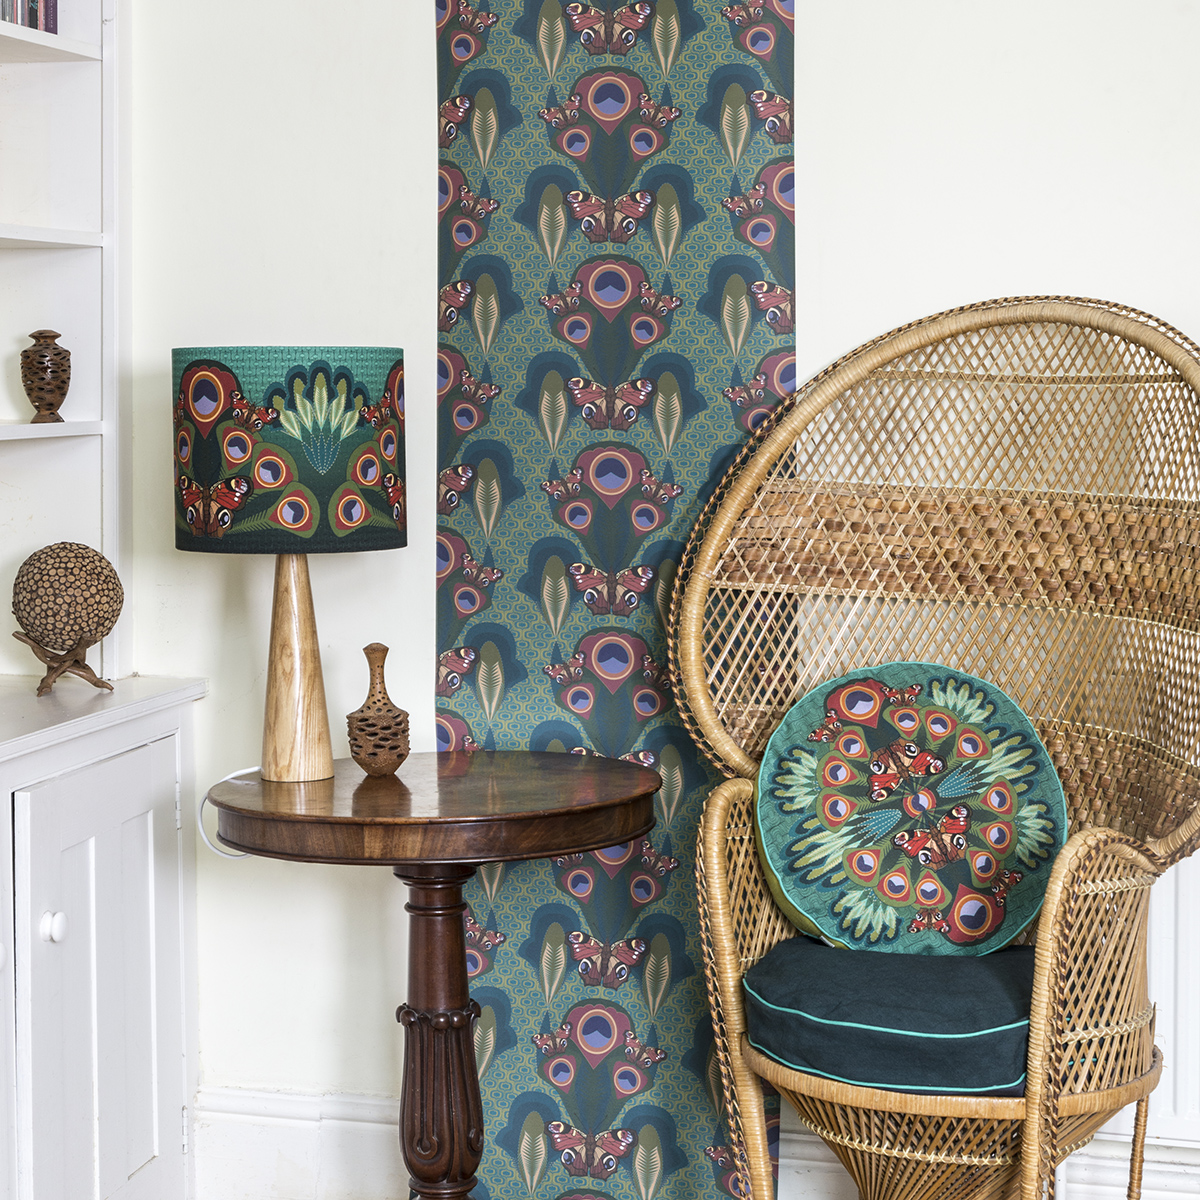 peacock butterfly panama and wallpaper lifestyle.jpg